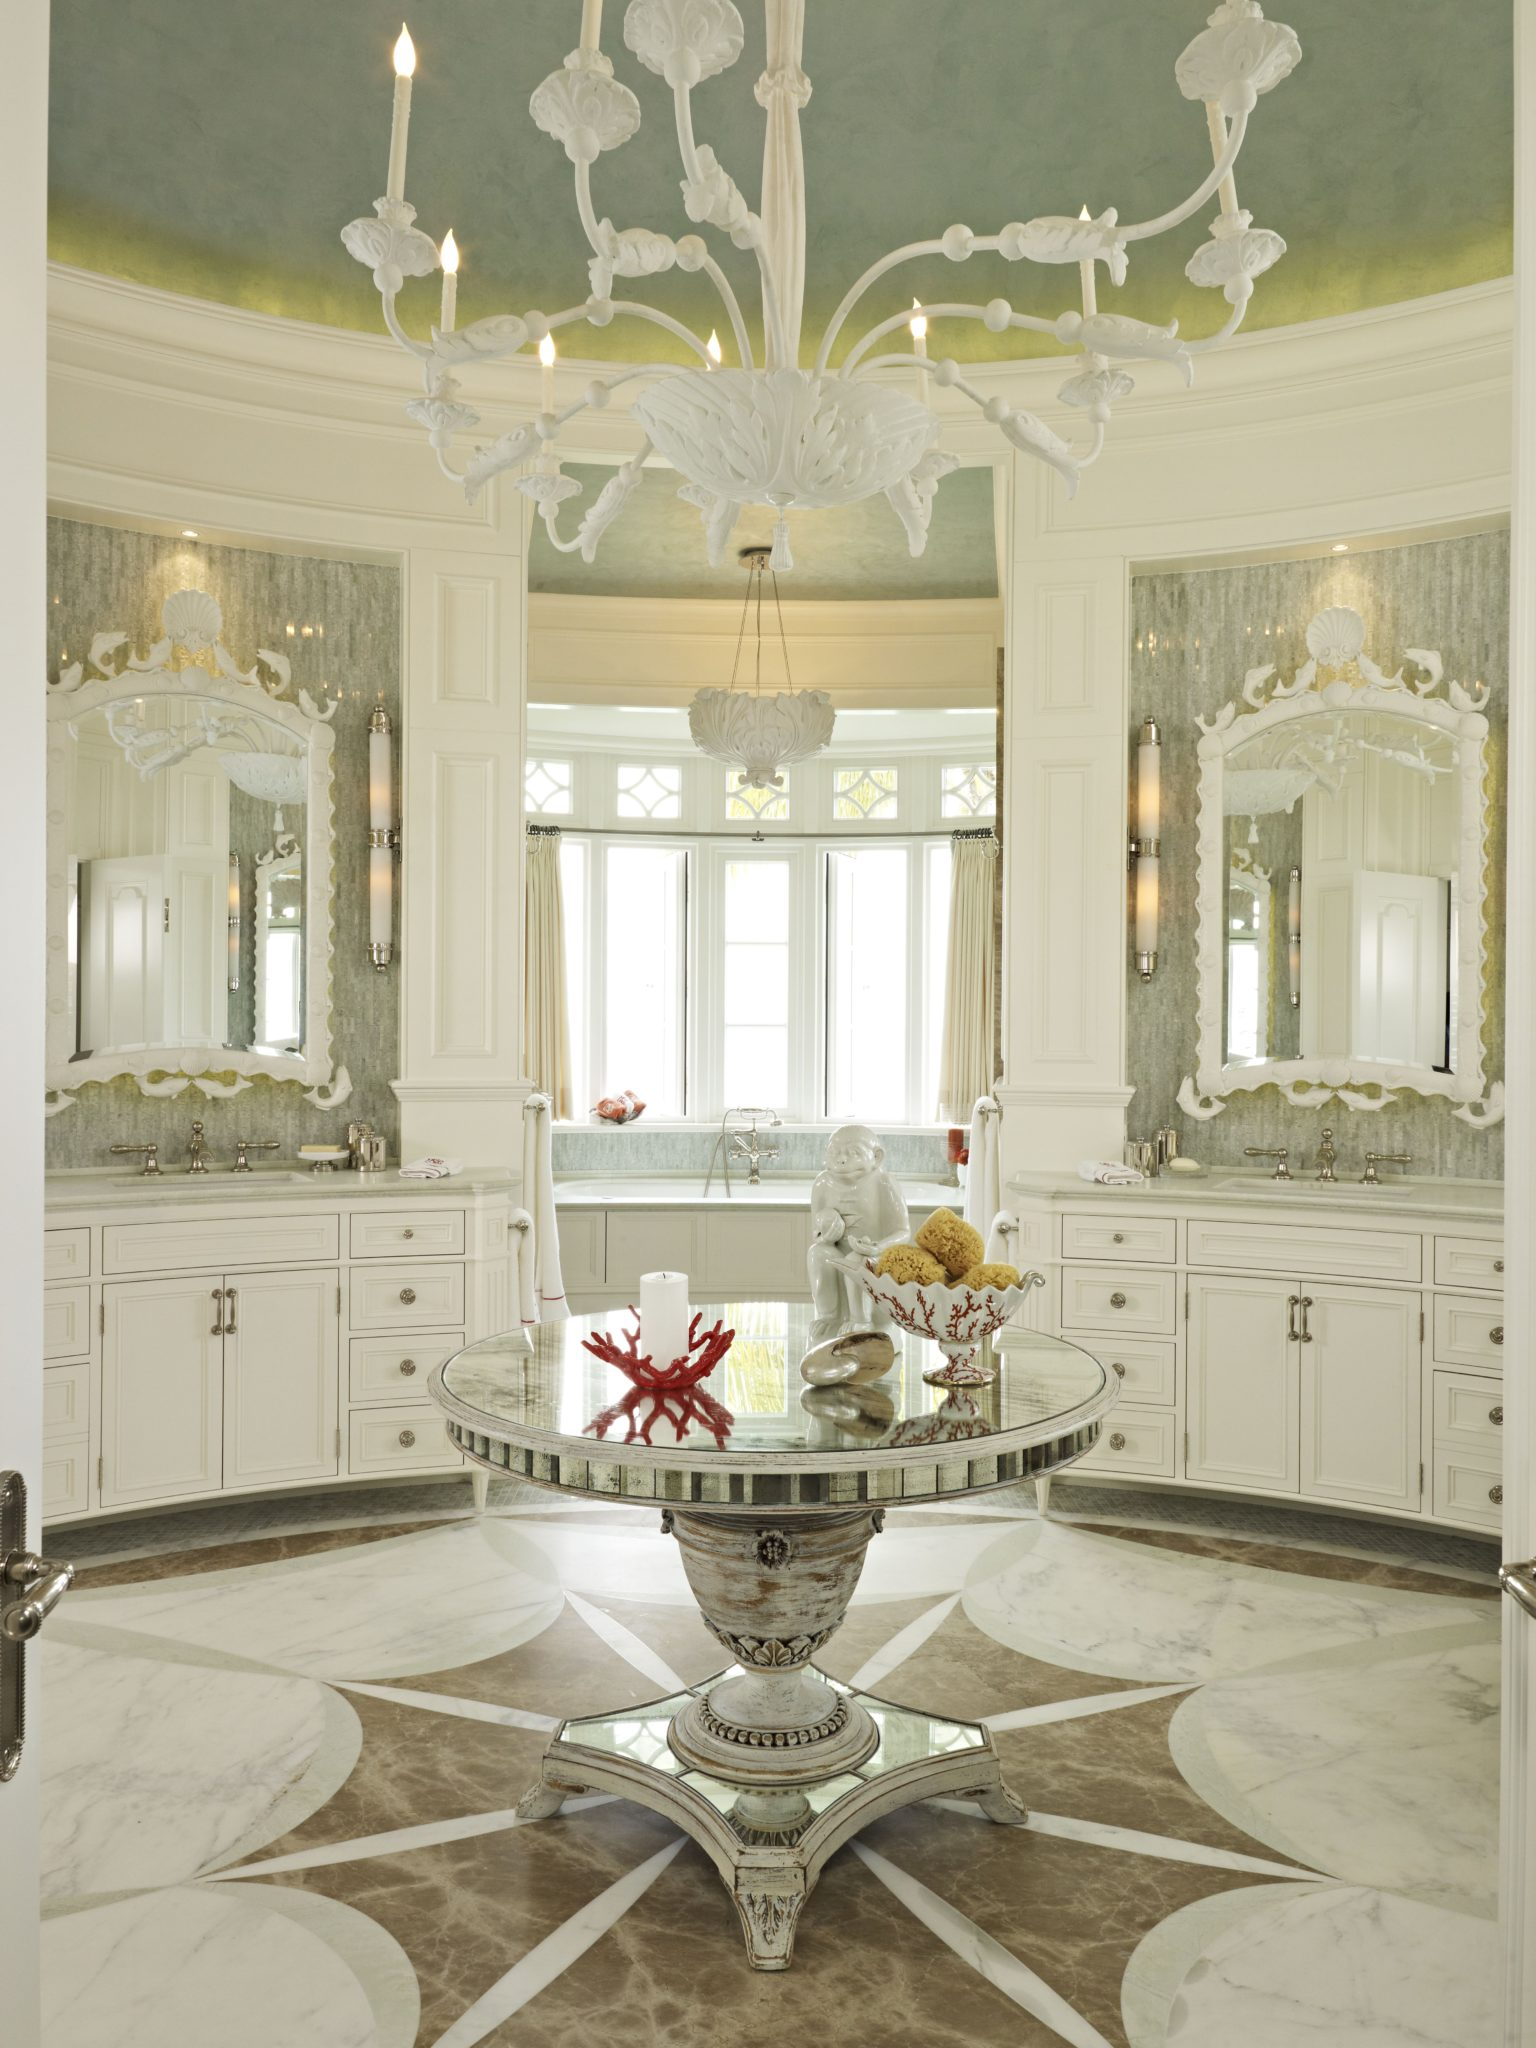 Reflective surfaces define this bathroom. The mirrors over the sinks have shell and fish motifs. A neoclassical starburst pattern in three colors of marble reinforces the room's geometry. By Taylor & Taylor